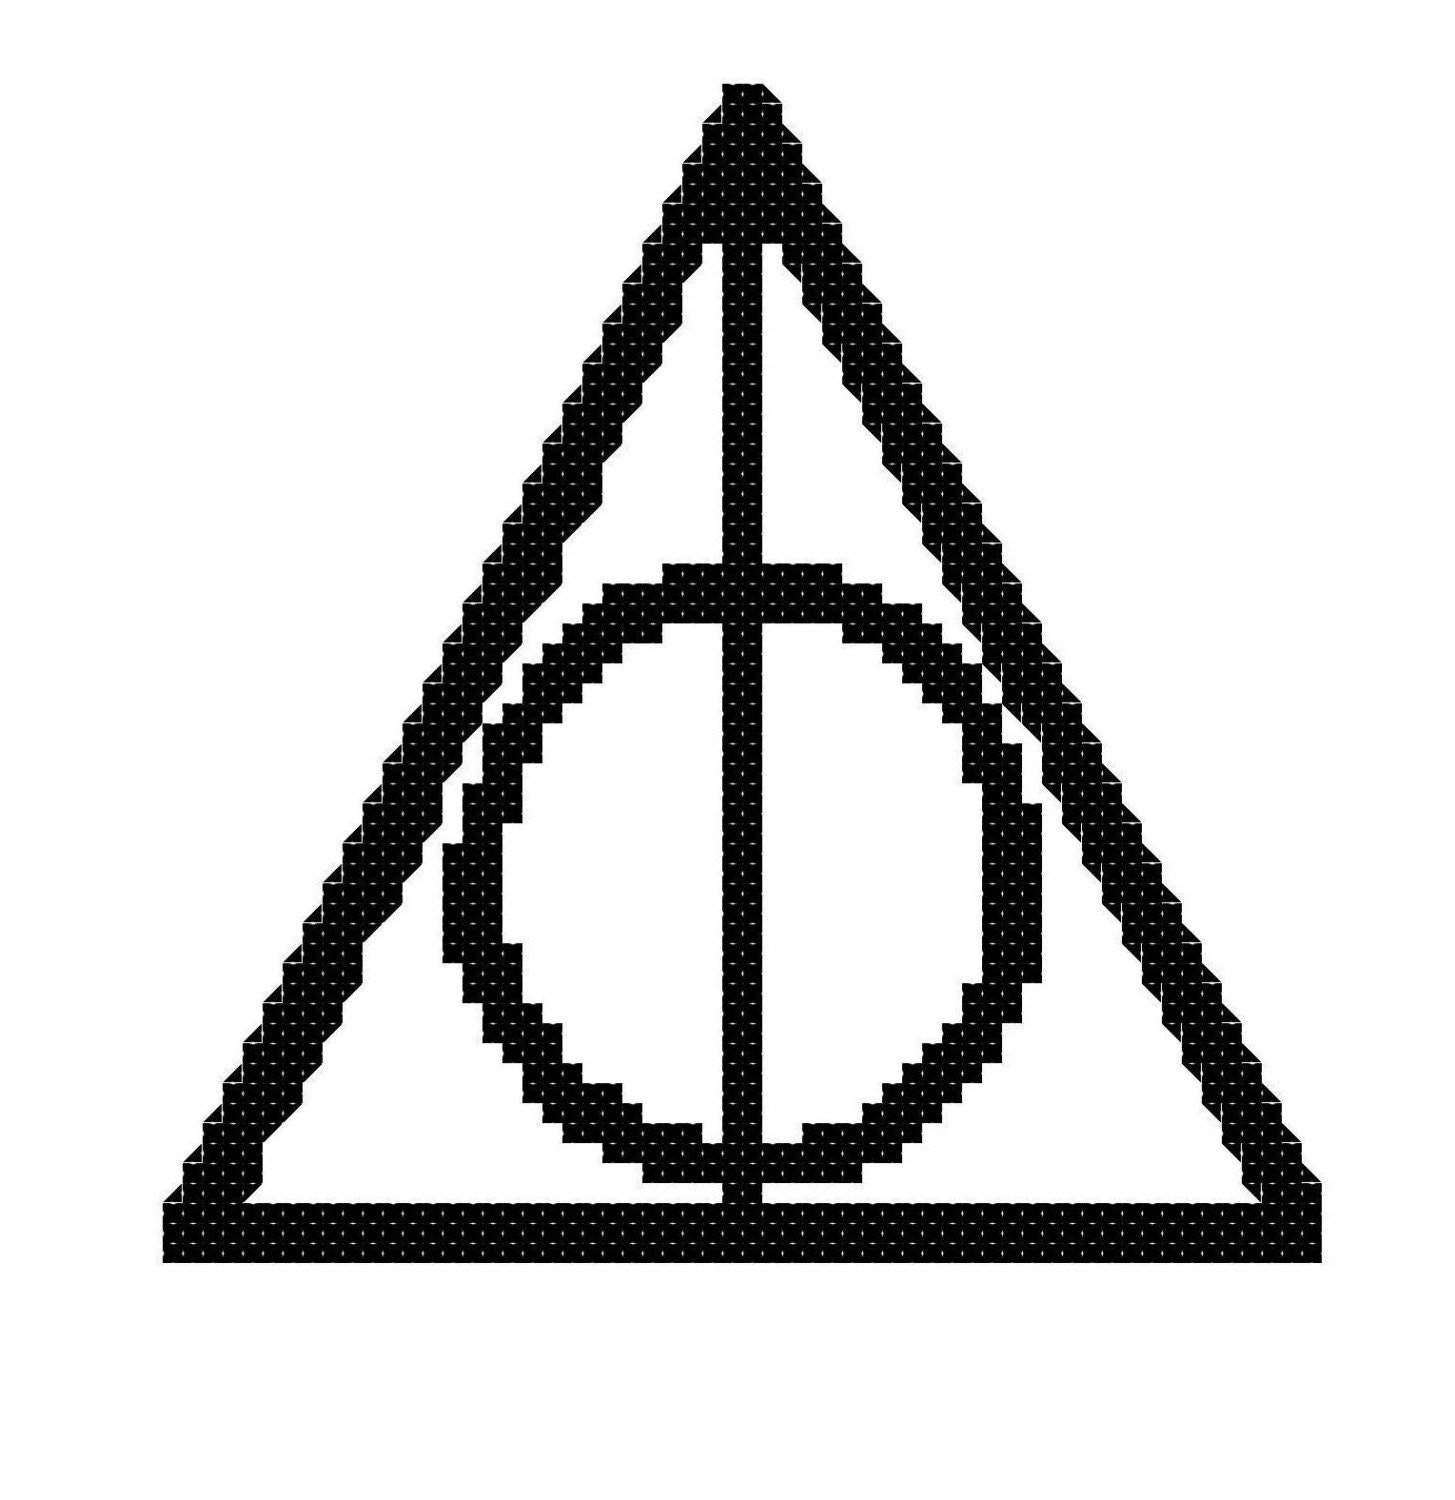 Harry Potter Elder Wand Symbol 2018 Images Pictures Feed Your